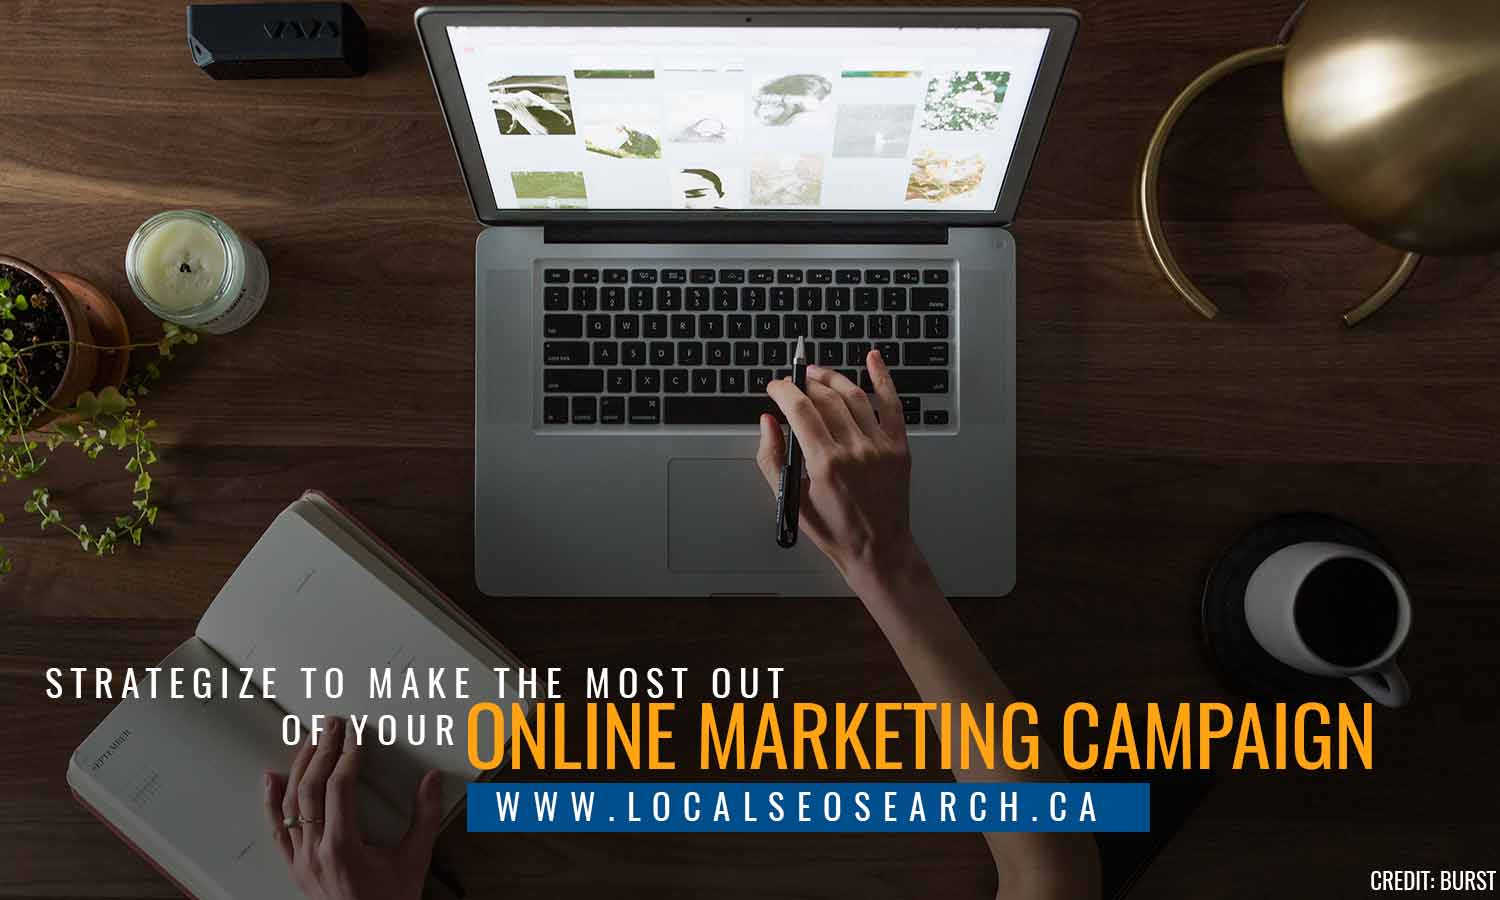 Strategize to make the most out of your online marketing campaign